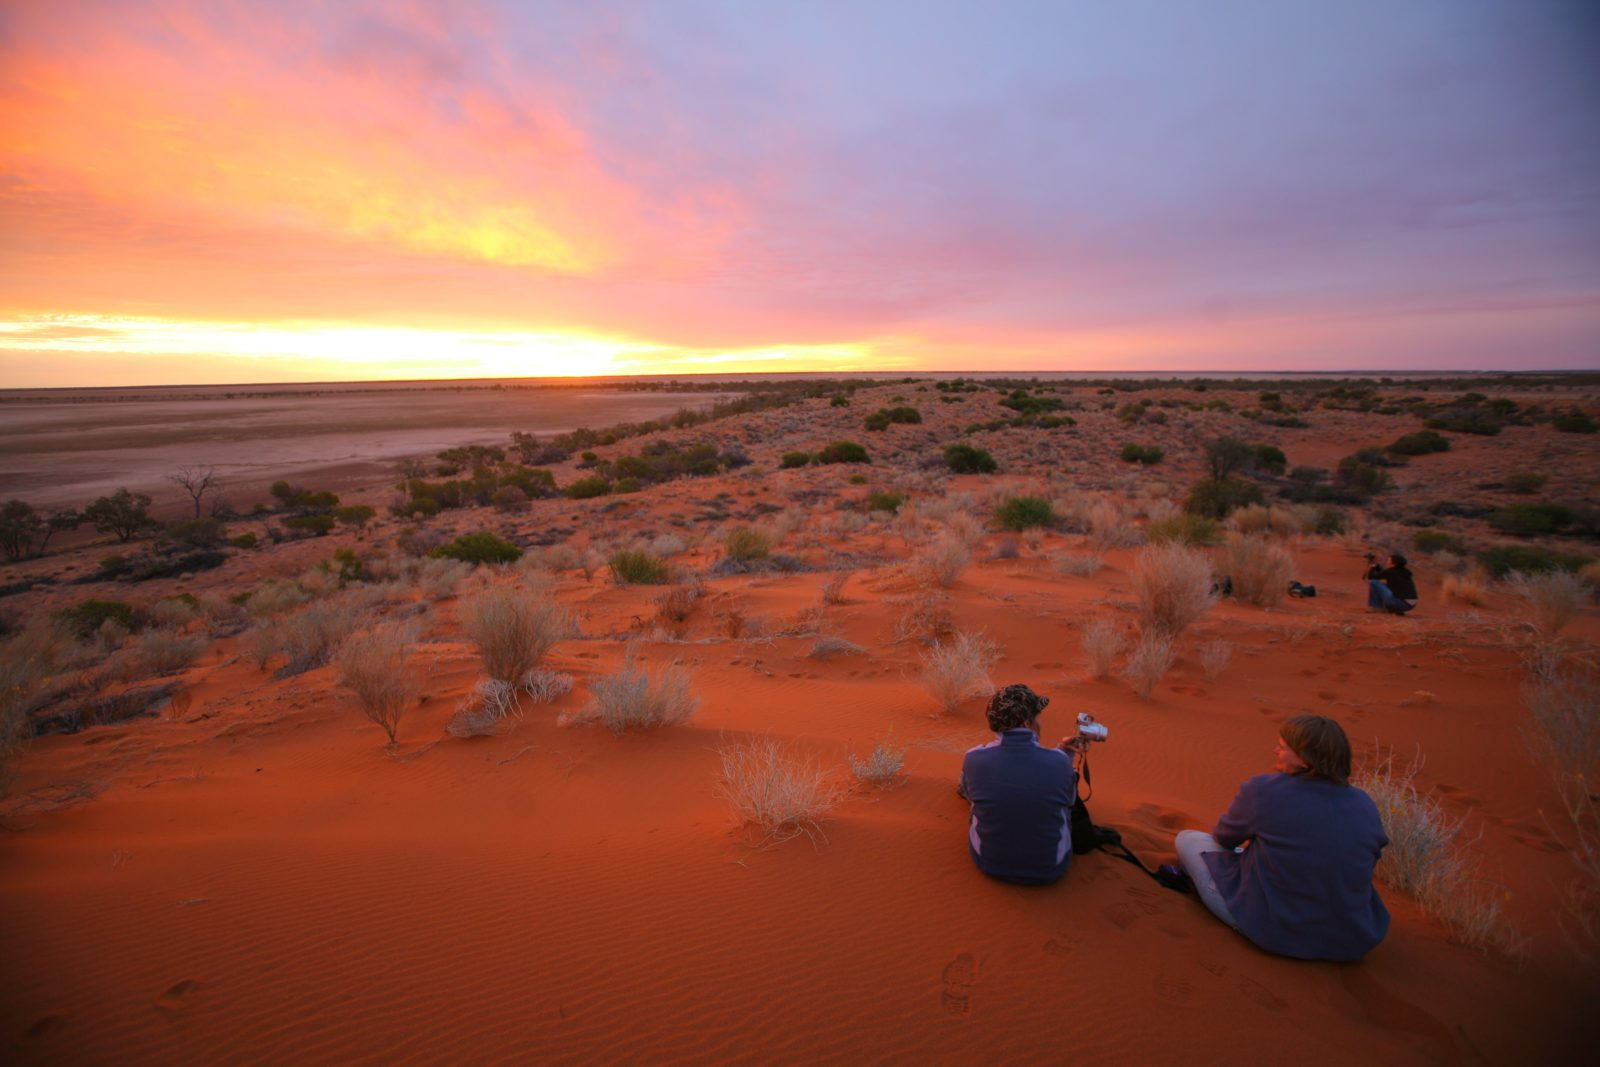 Visitors enjoying Diamantina's red sand hills and sunset.